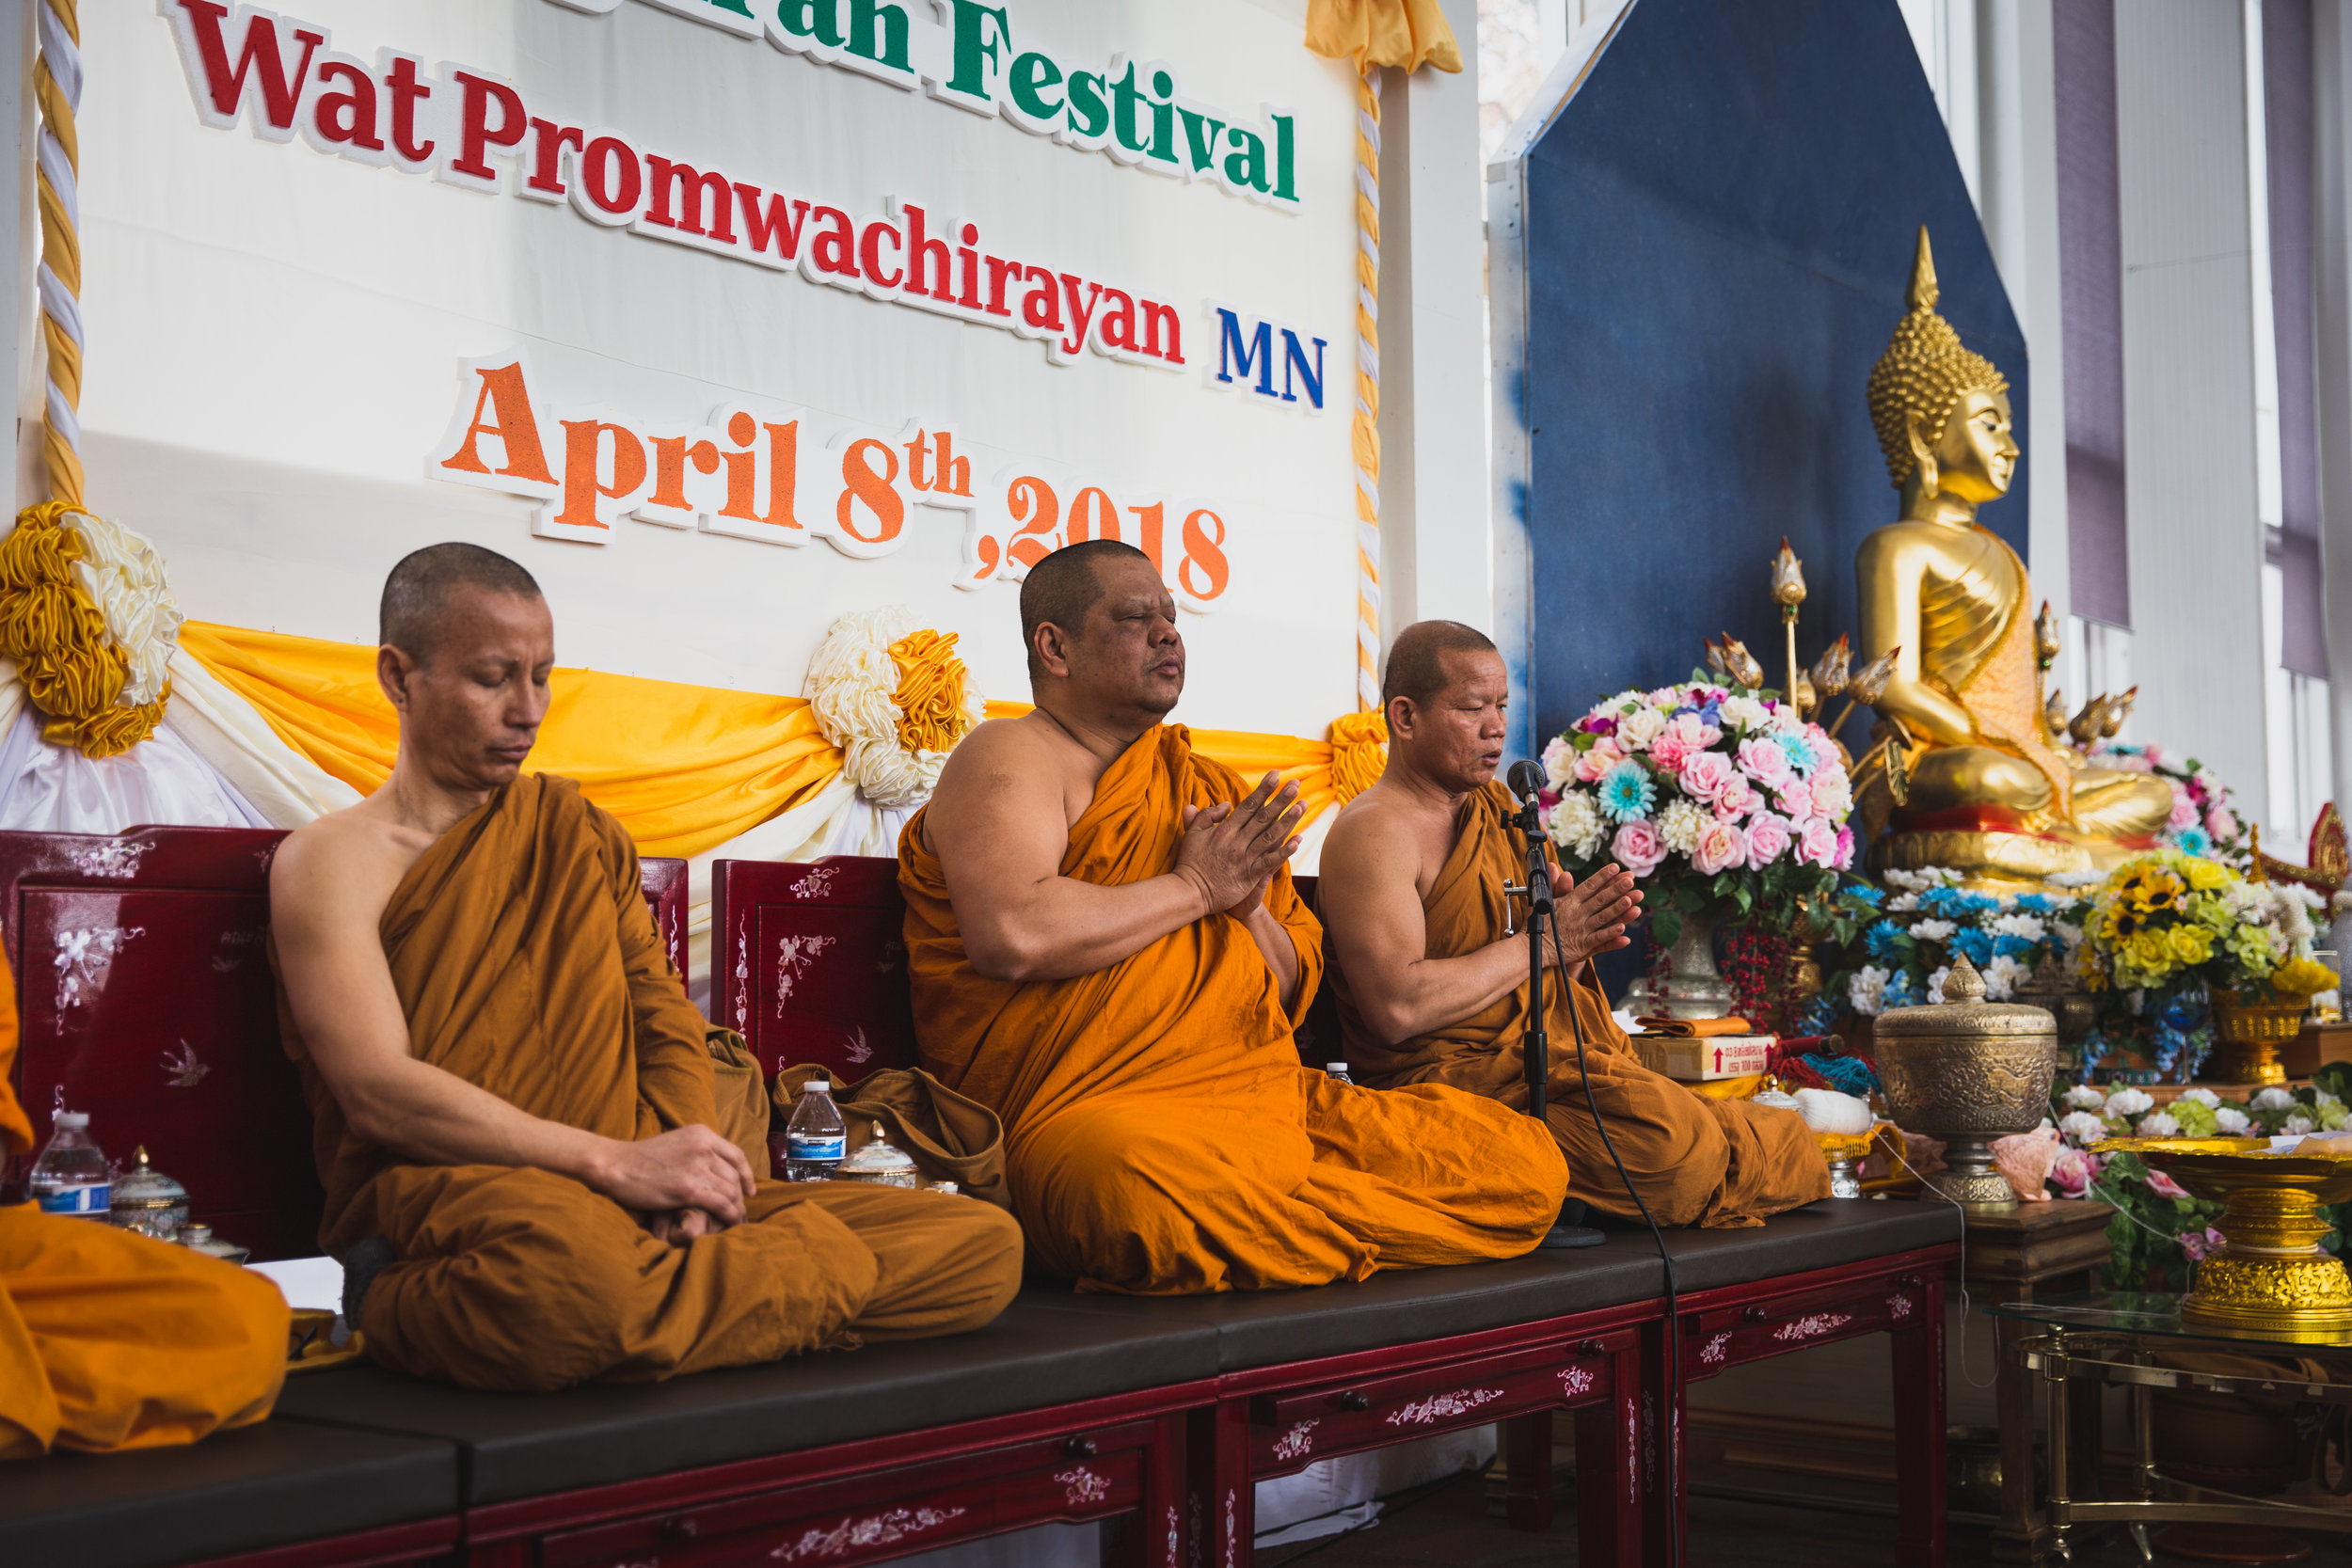 Sprinkling Buddha statues with water is part of the purification tradition. - Young people often douse each other in water as well, but not so much here in Minnesota in the snow. Put April 13th in Thailand on your bucket list.